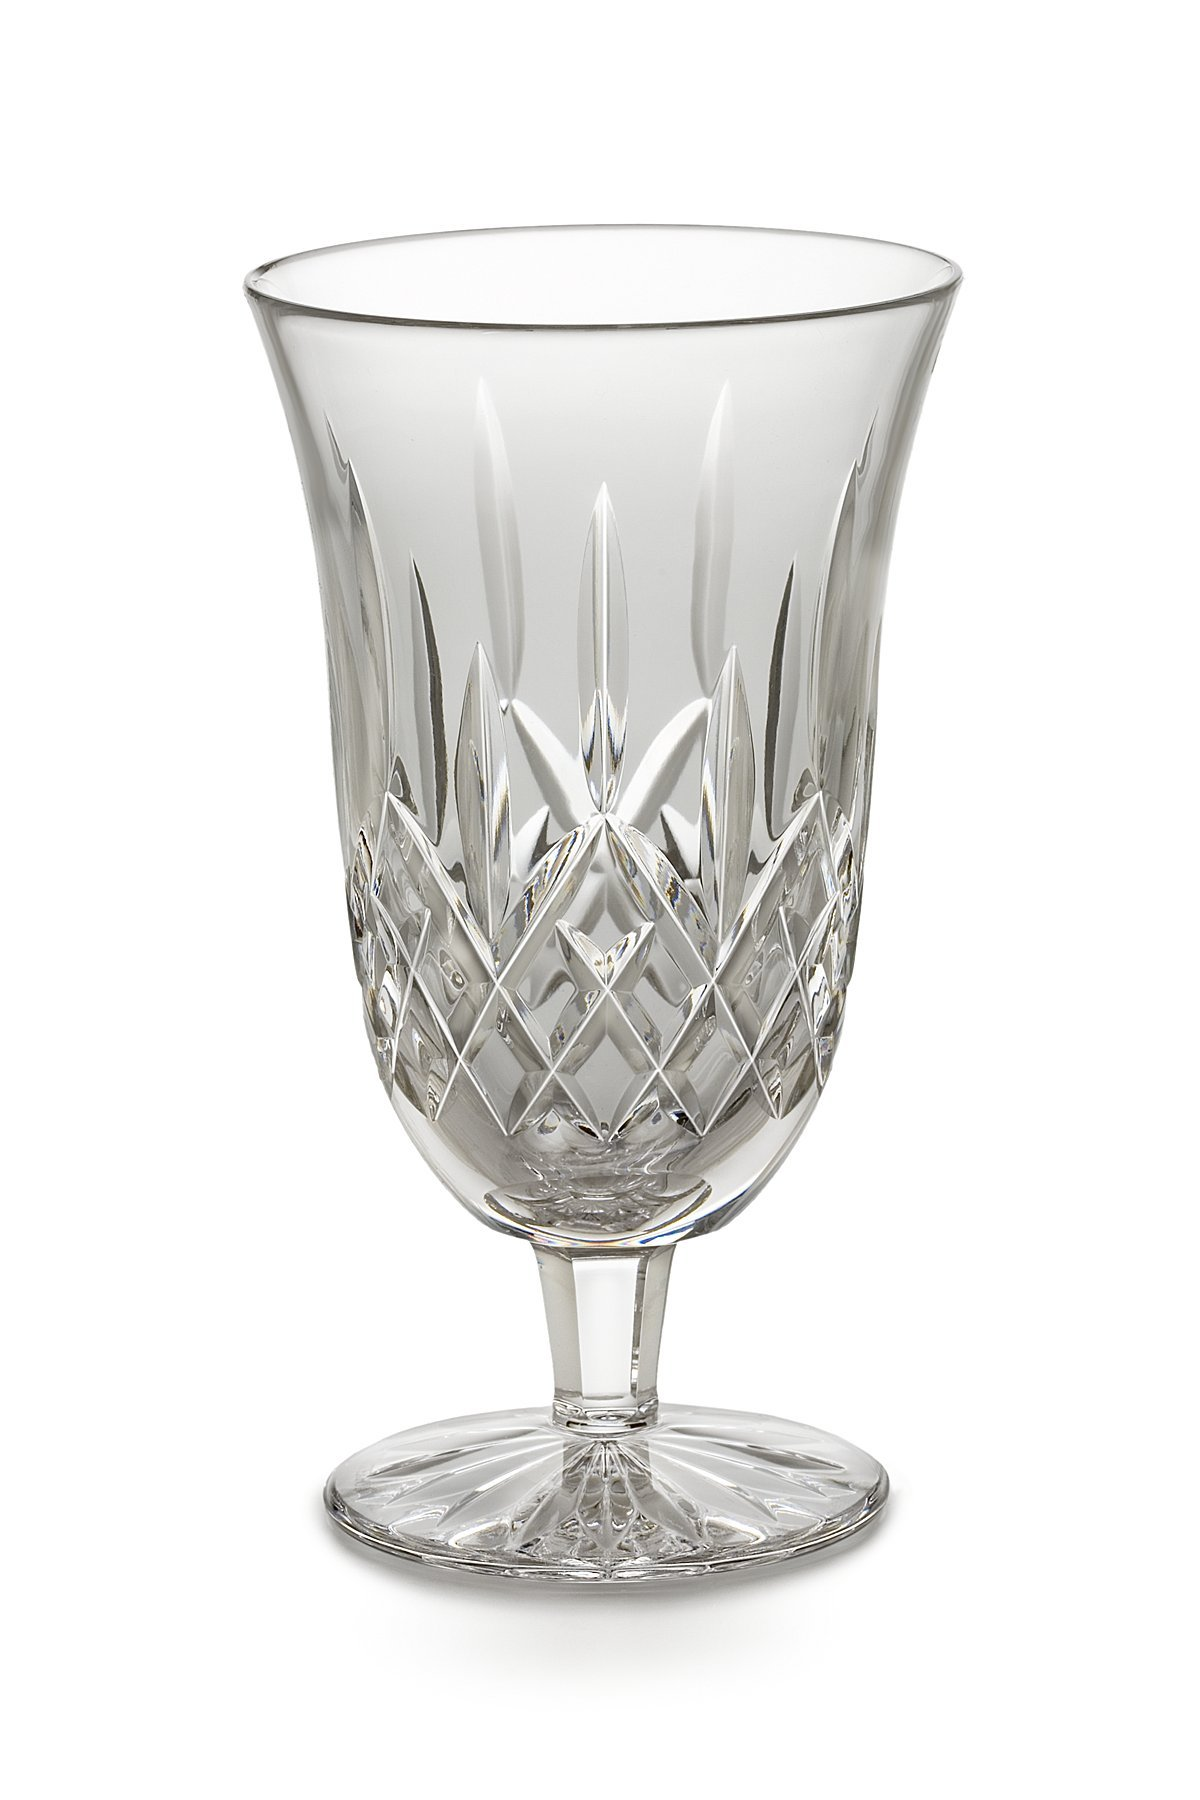 Waterford Lismore Iced Beverage, 12-Ounce by Waterford  Crystal